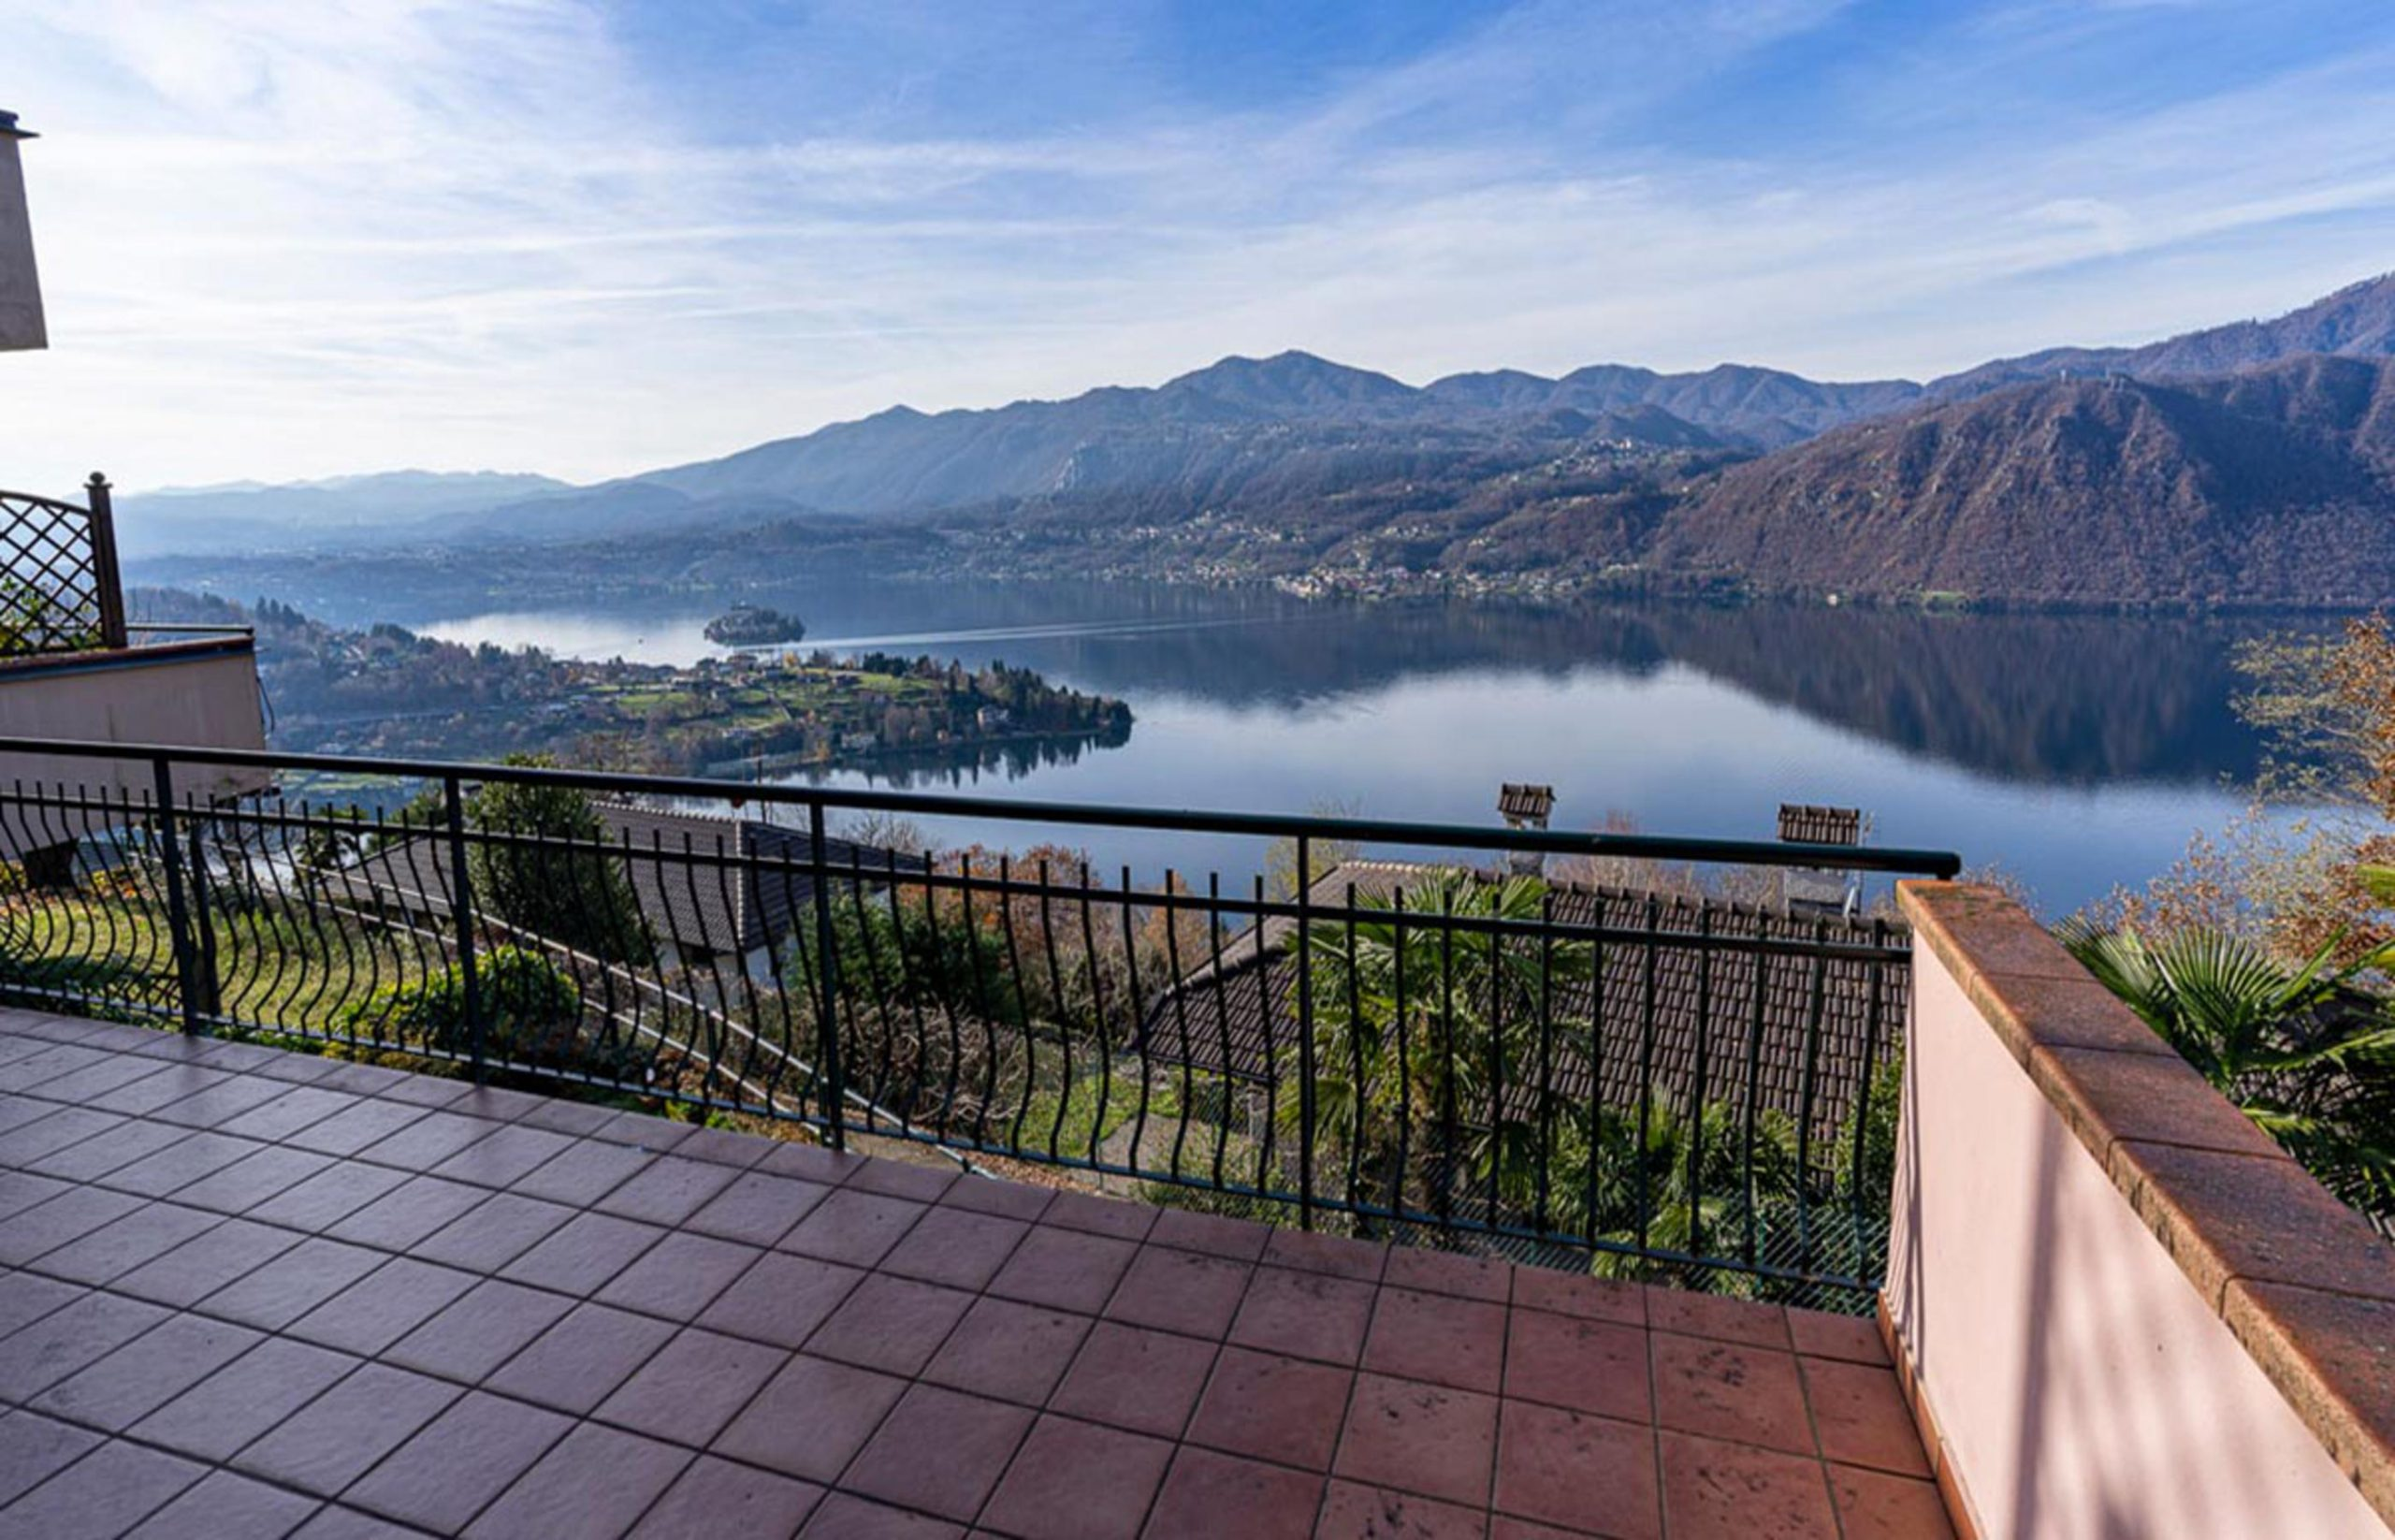 CARCEGNA Apartment with the best lake view and terrace